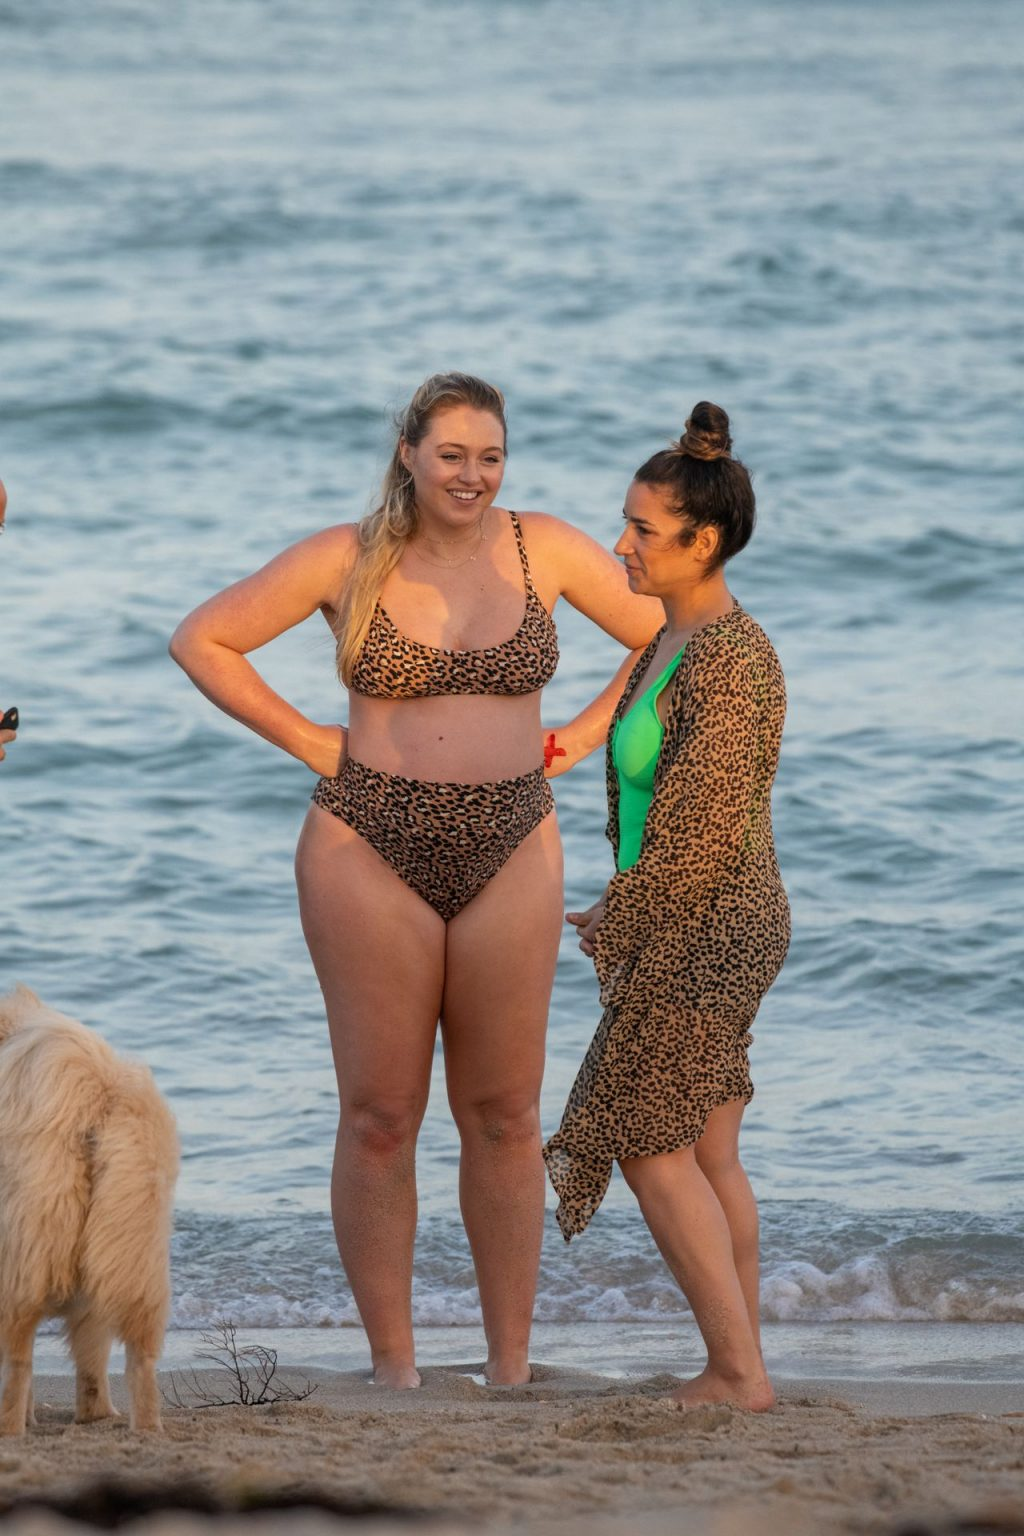 Iskra Lawrence Sexy The Fappening Blog 30 1024x1536 - Heavily Pregnant Model Iskra Lawrence Takes A Sunset Dip In Miami Beach (44 Photos)